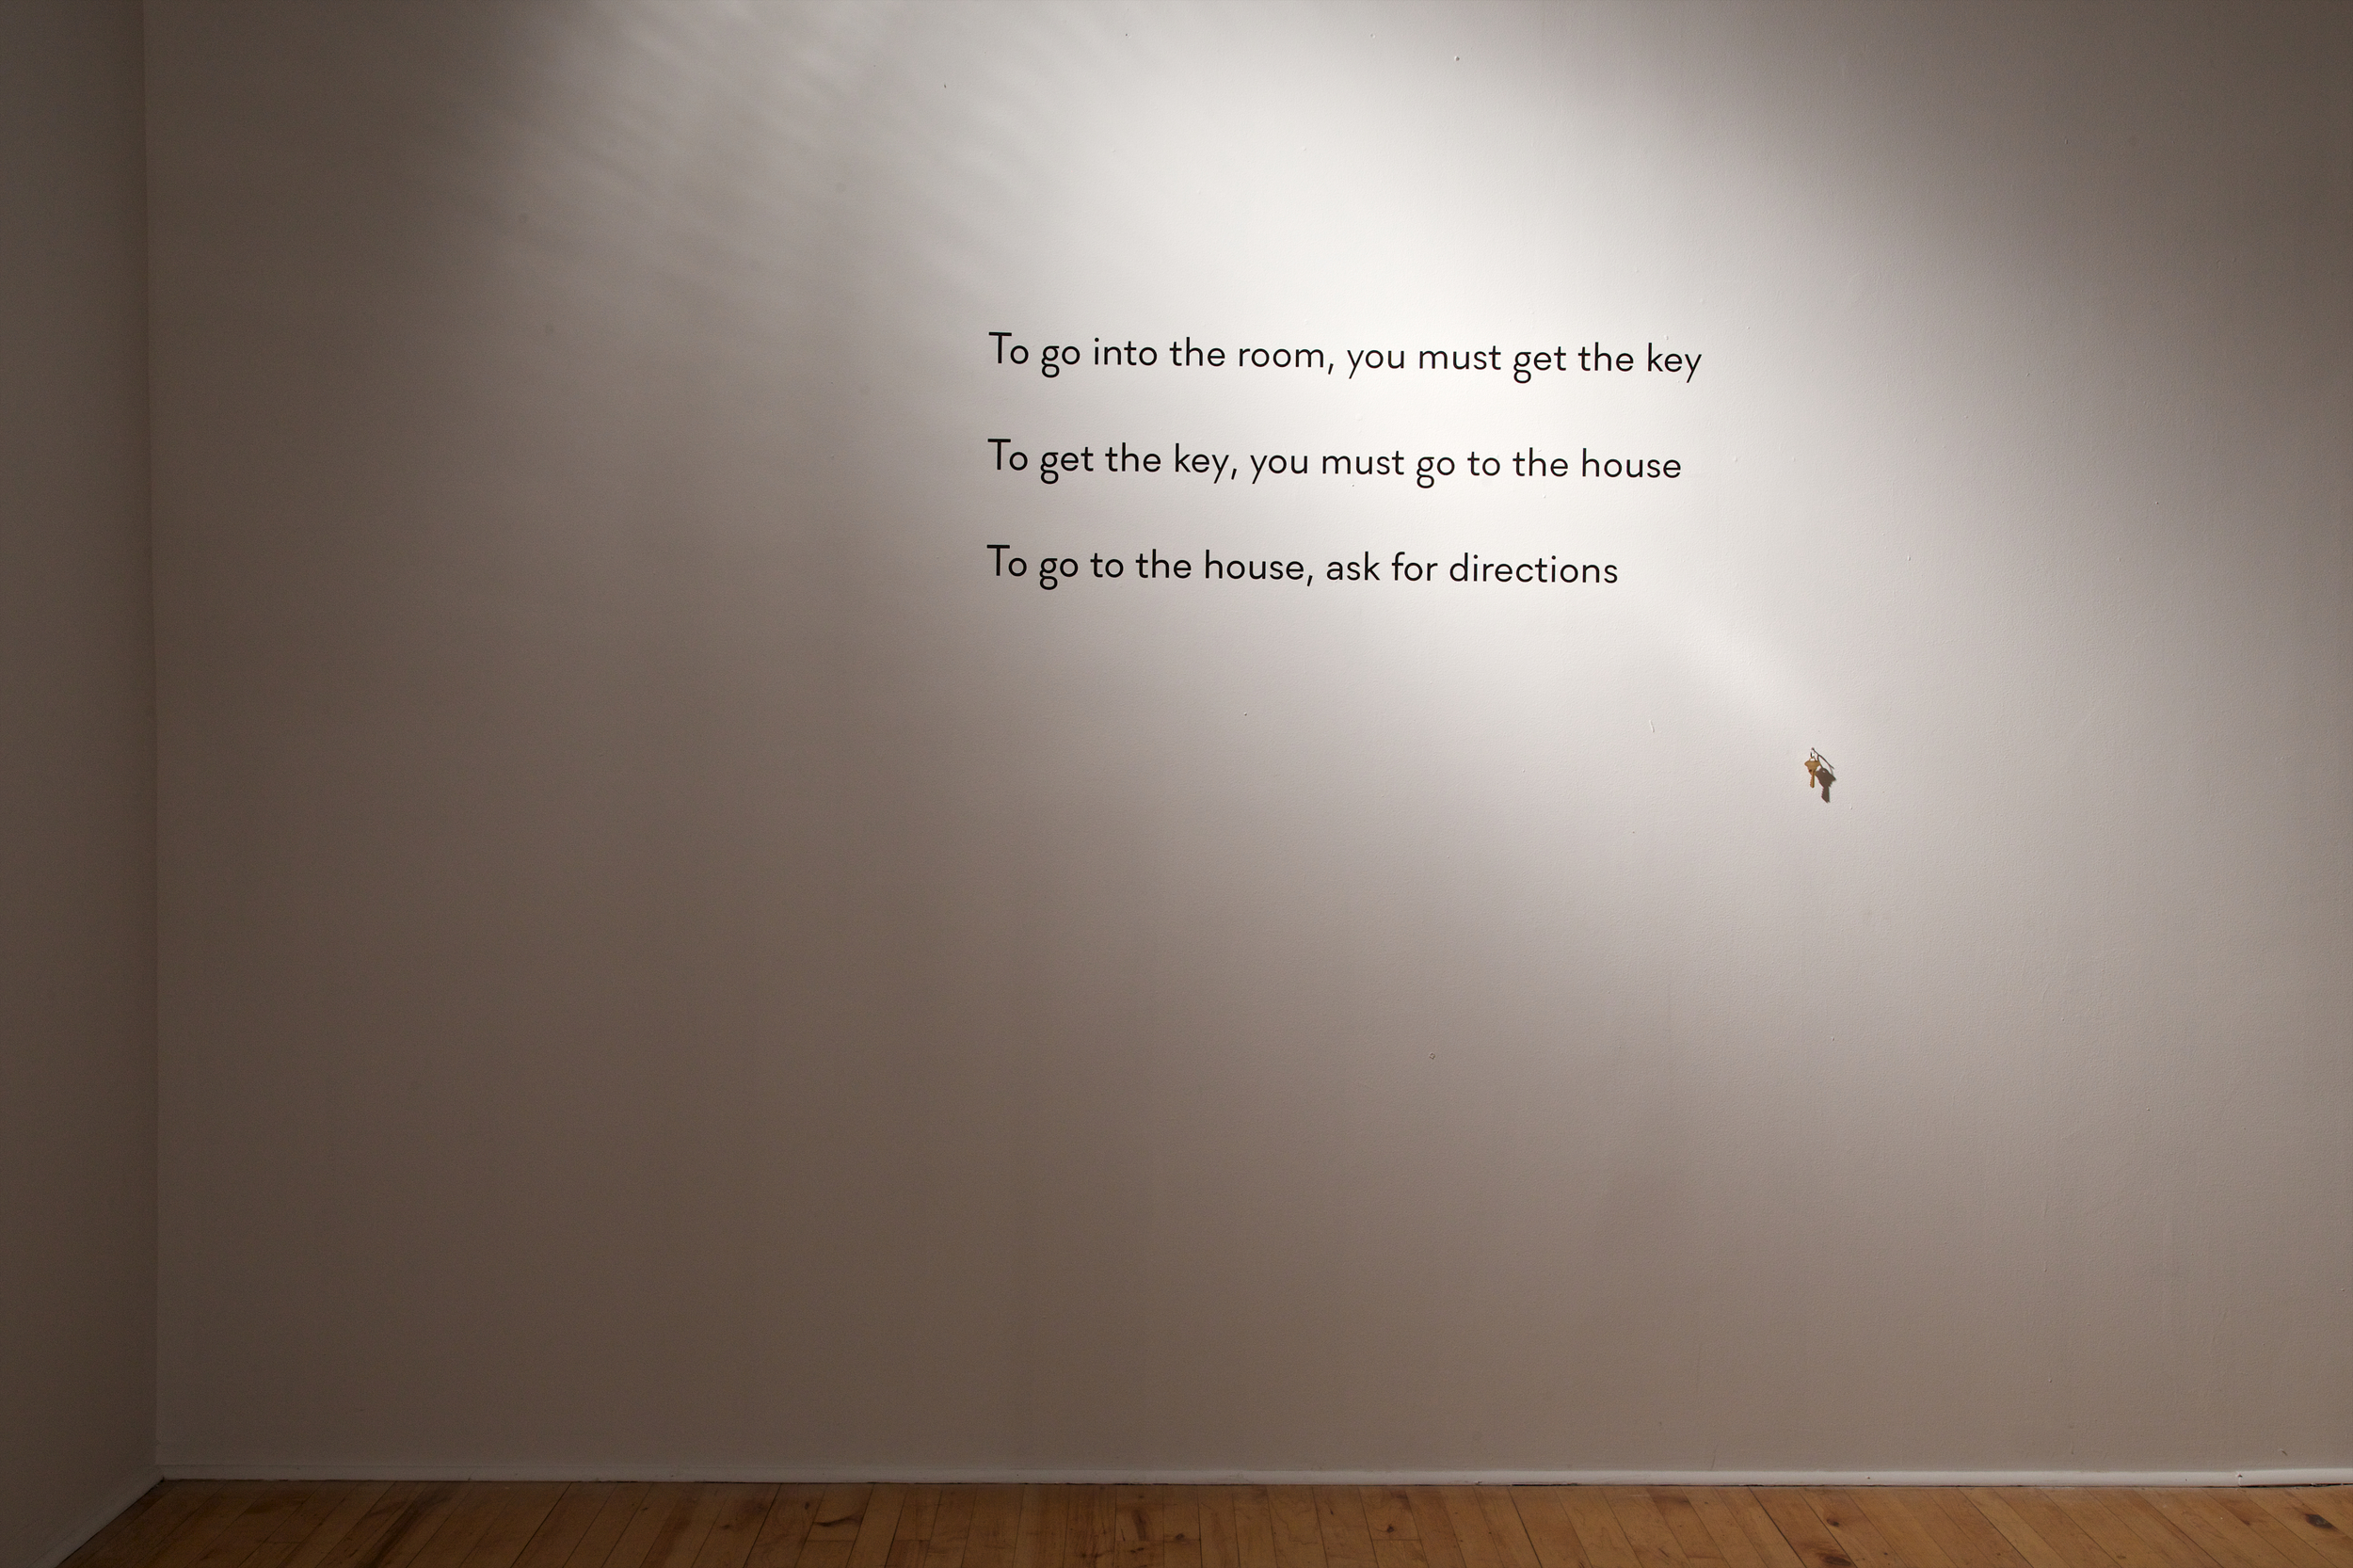 Installation view.  Wall text.